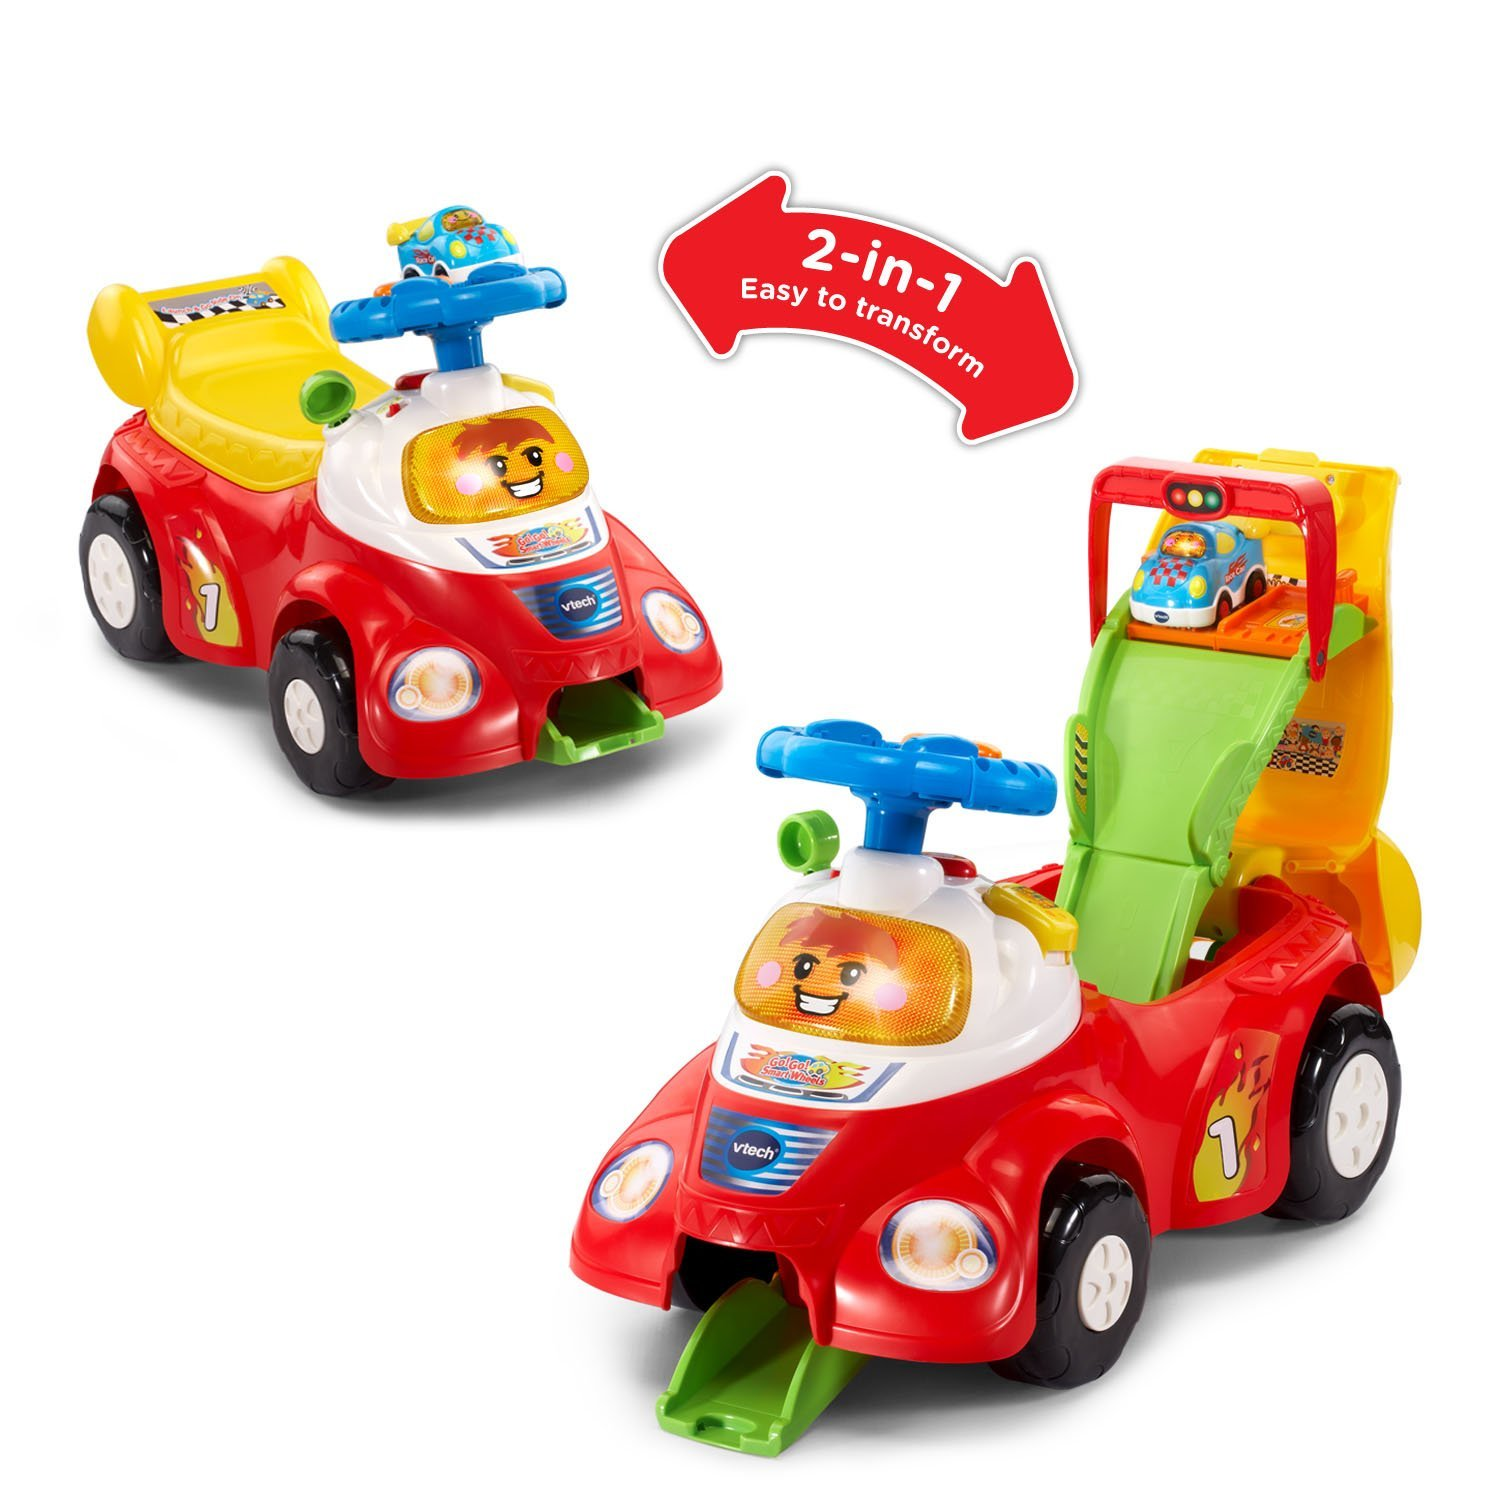 Amazon.com: VTech Go! Go! Smart Wheels Launch and Go Ride On for just $20.98!